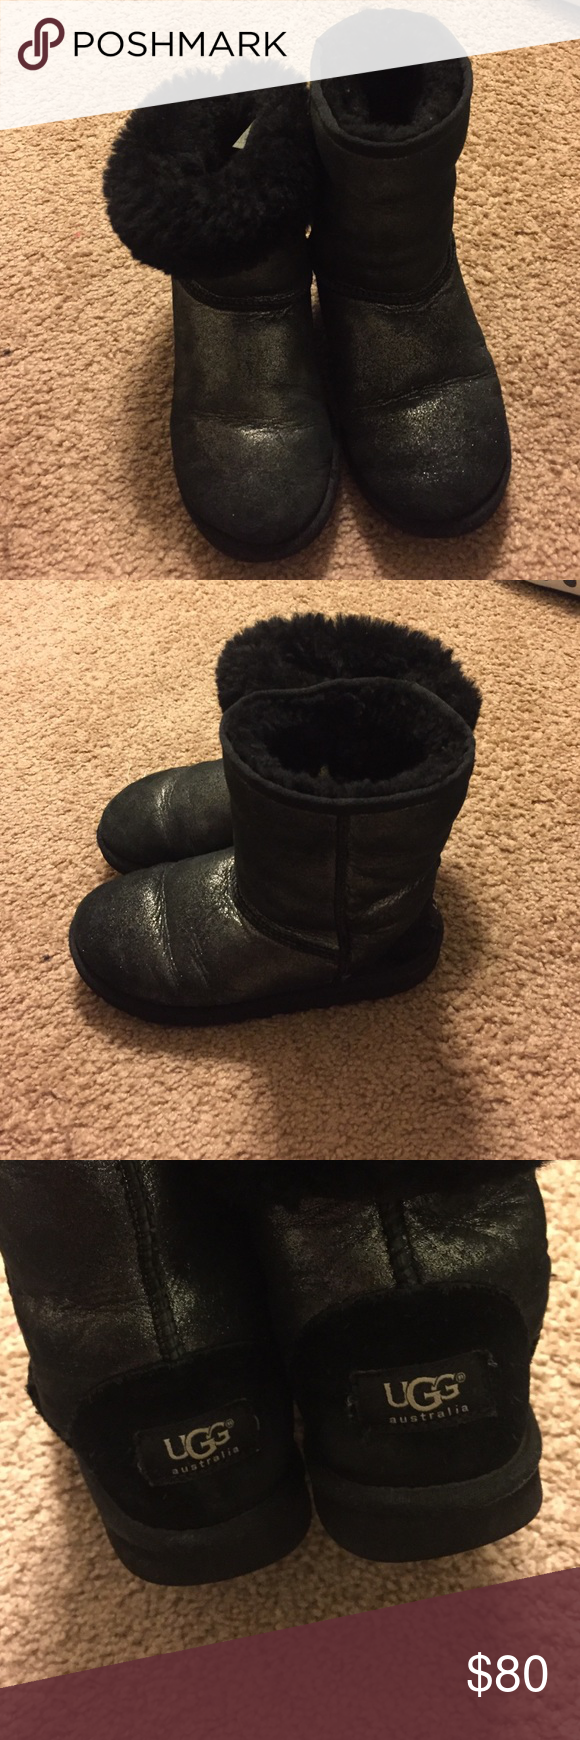 Black/Silver Ugg Boots Black mid ugg boots with a silver finish. UGG Shoes Rain & Snow Boots